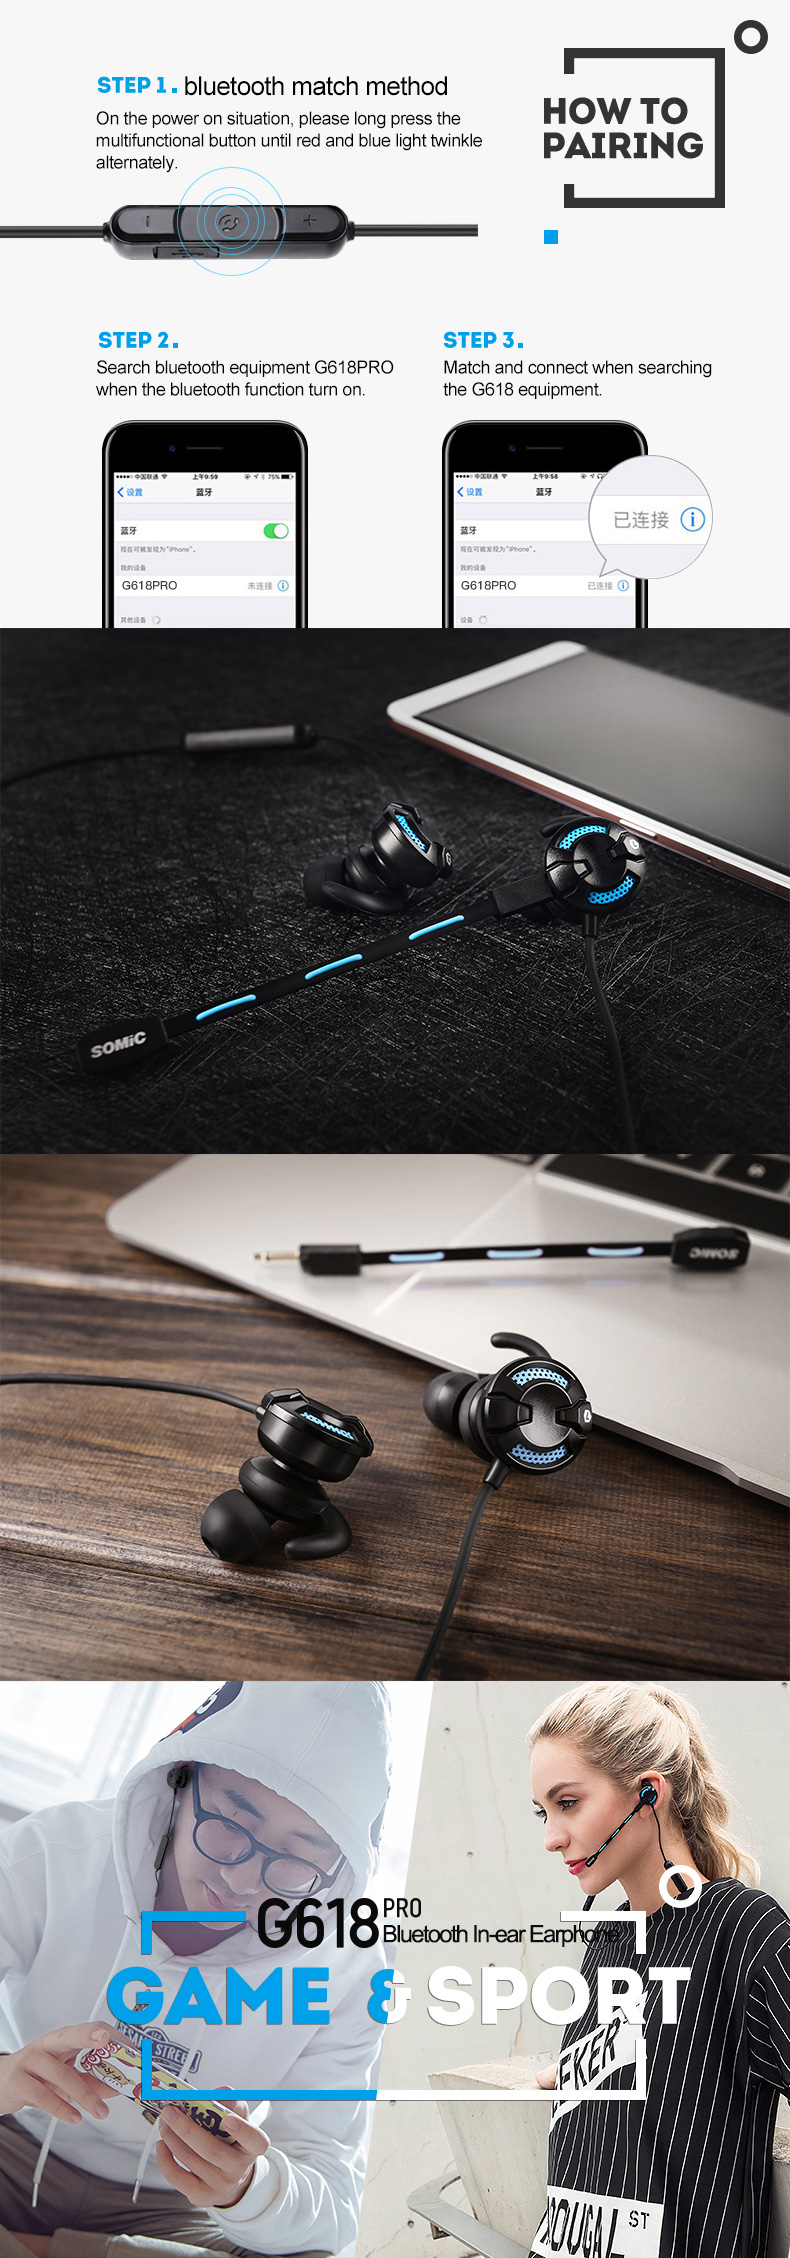 SOMiC G618 PRO bluetooth 4.1 Wireless In-ear Mobile Gaming Earphone Headphone with Dual Mic